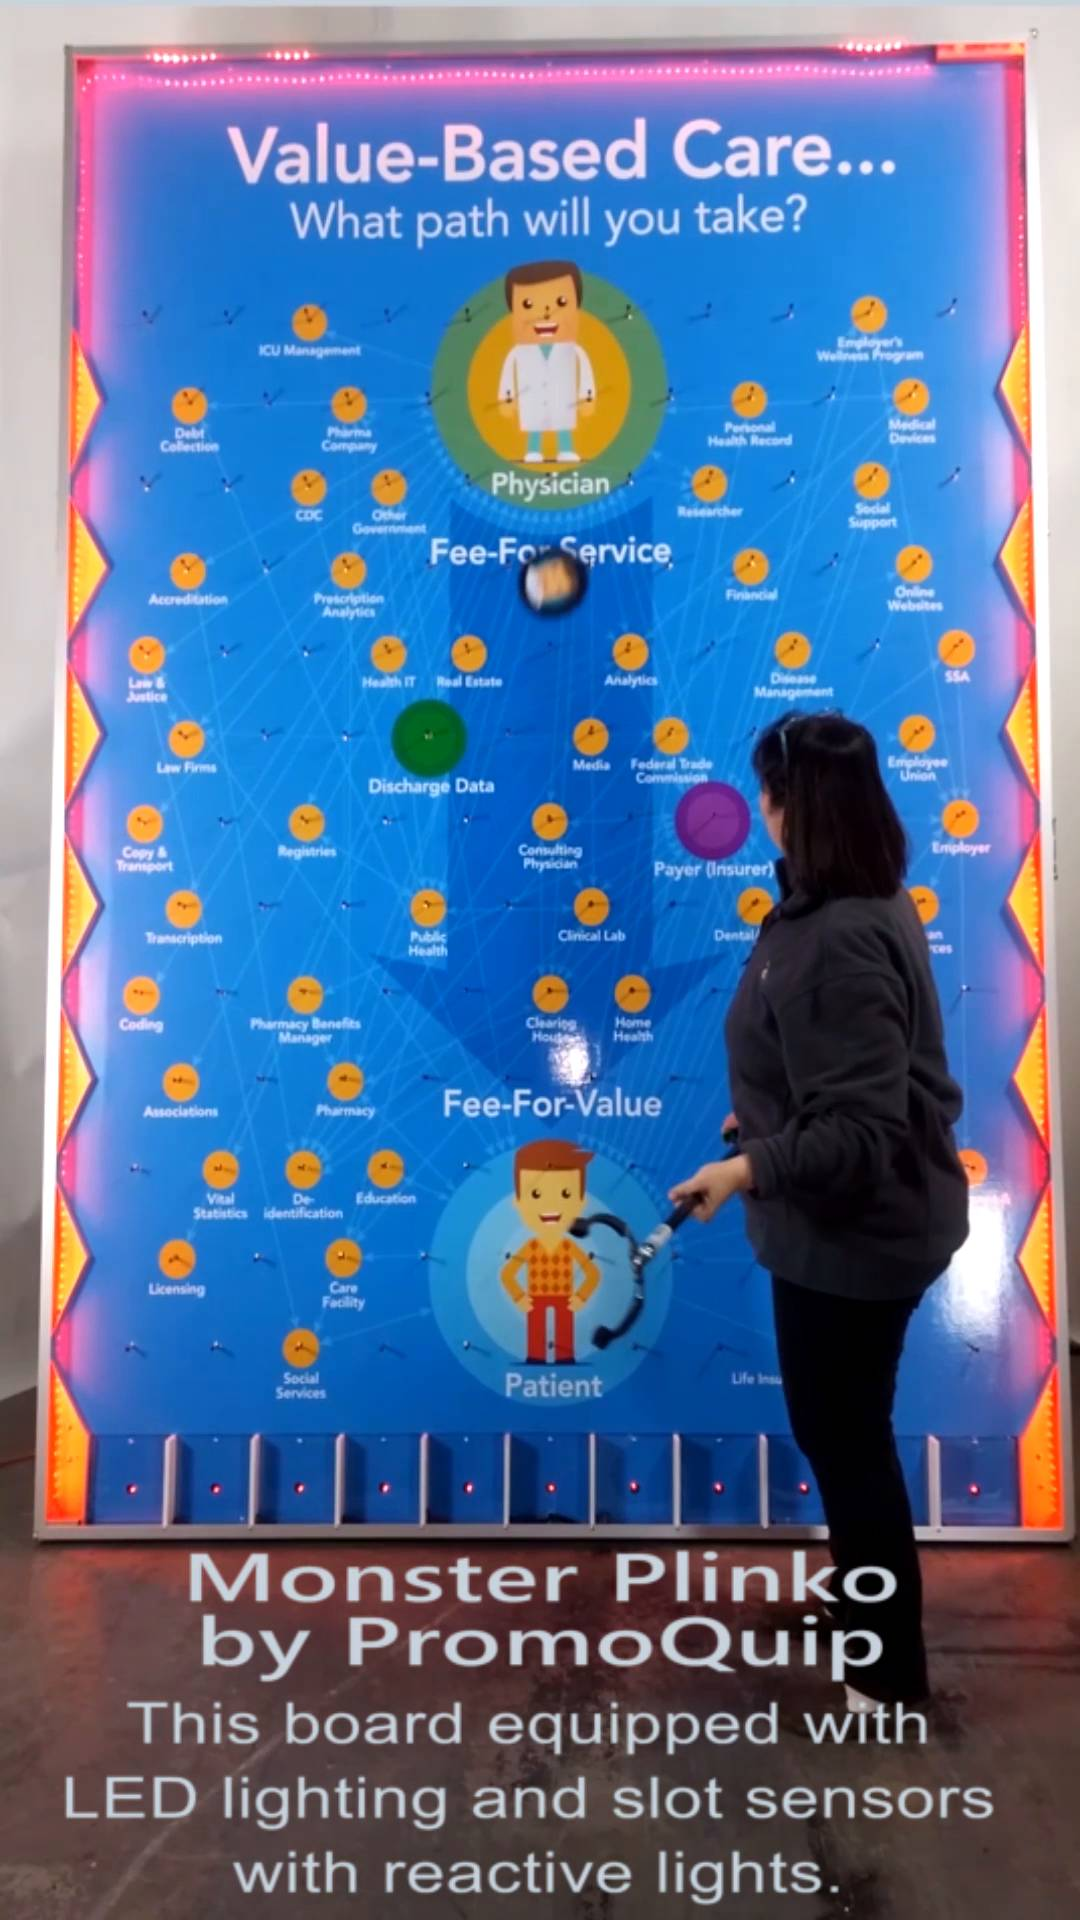 Deluxe LED Lighting for your monster plinko game board dramatically draws attention to your trade show booth etc. & Deluxe LED Lighting for your monster plinko game board dramatically ...